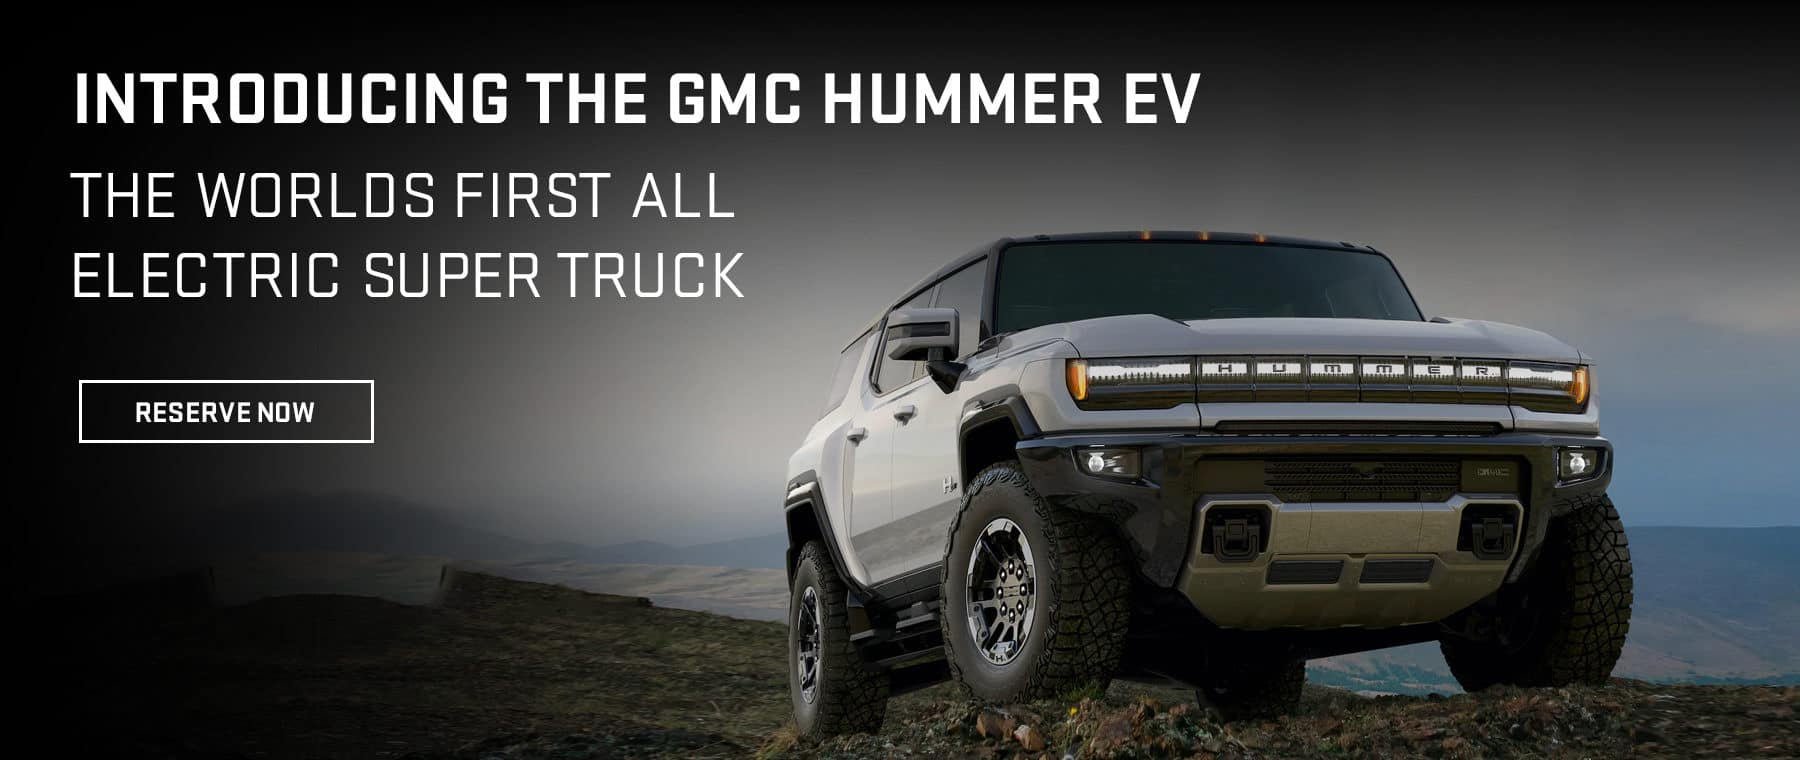 Introducing the GMC Hummer EV. The Worlds First All Electric Super Truck